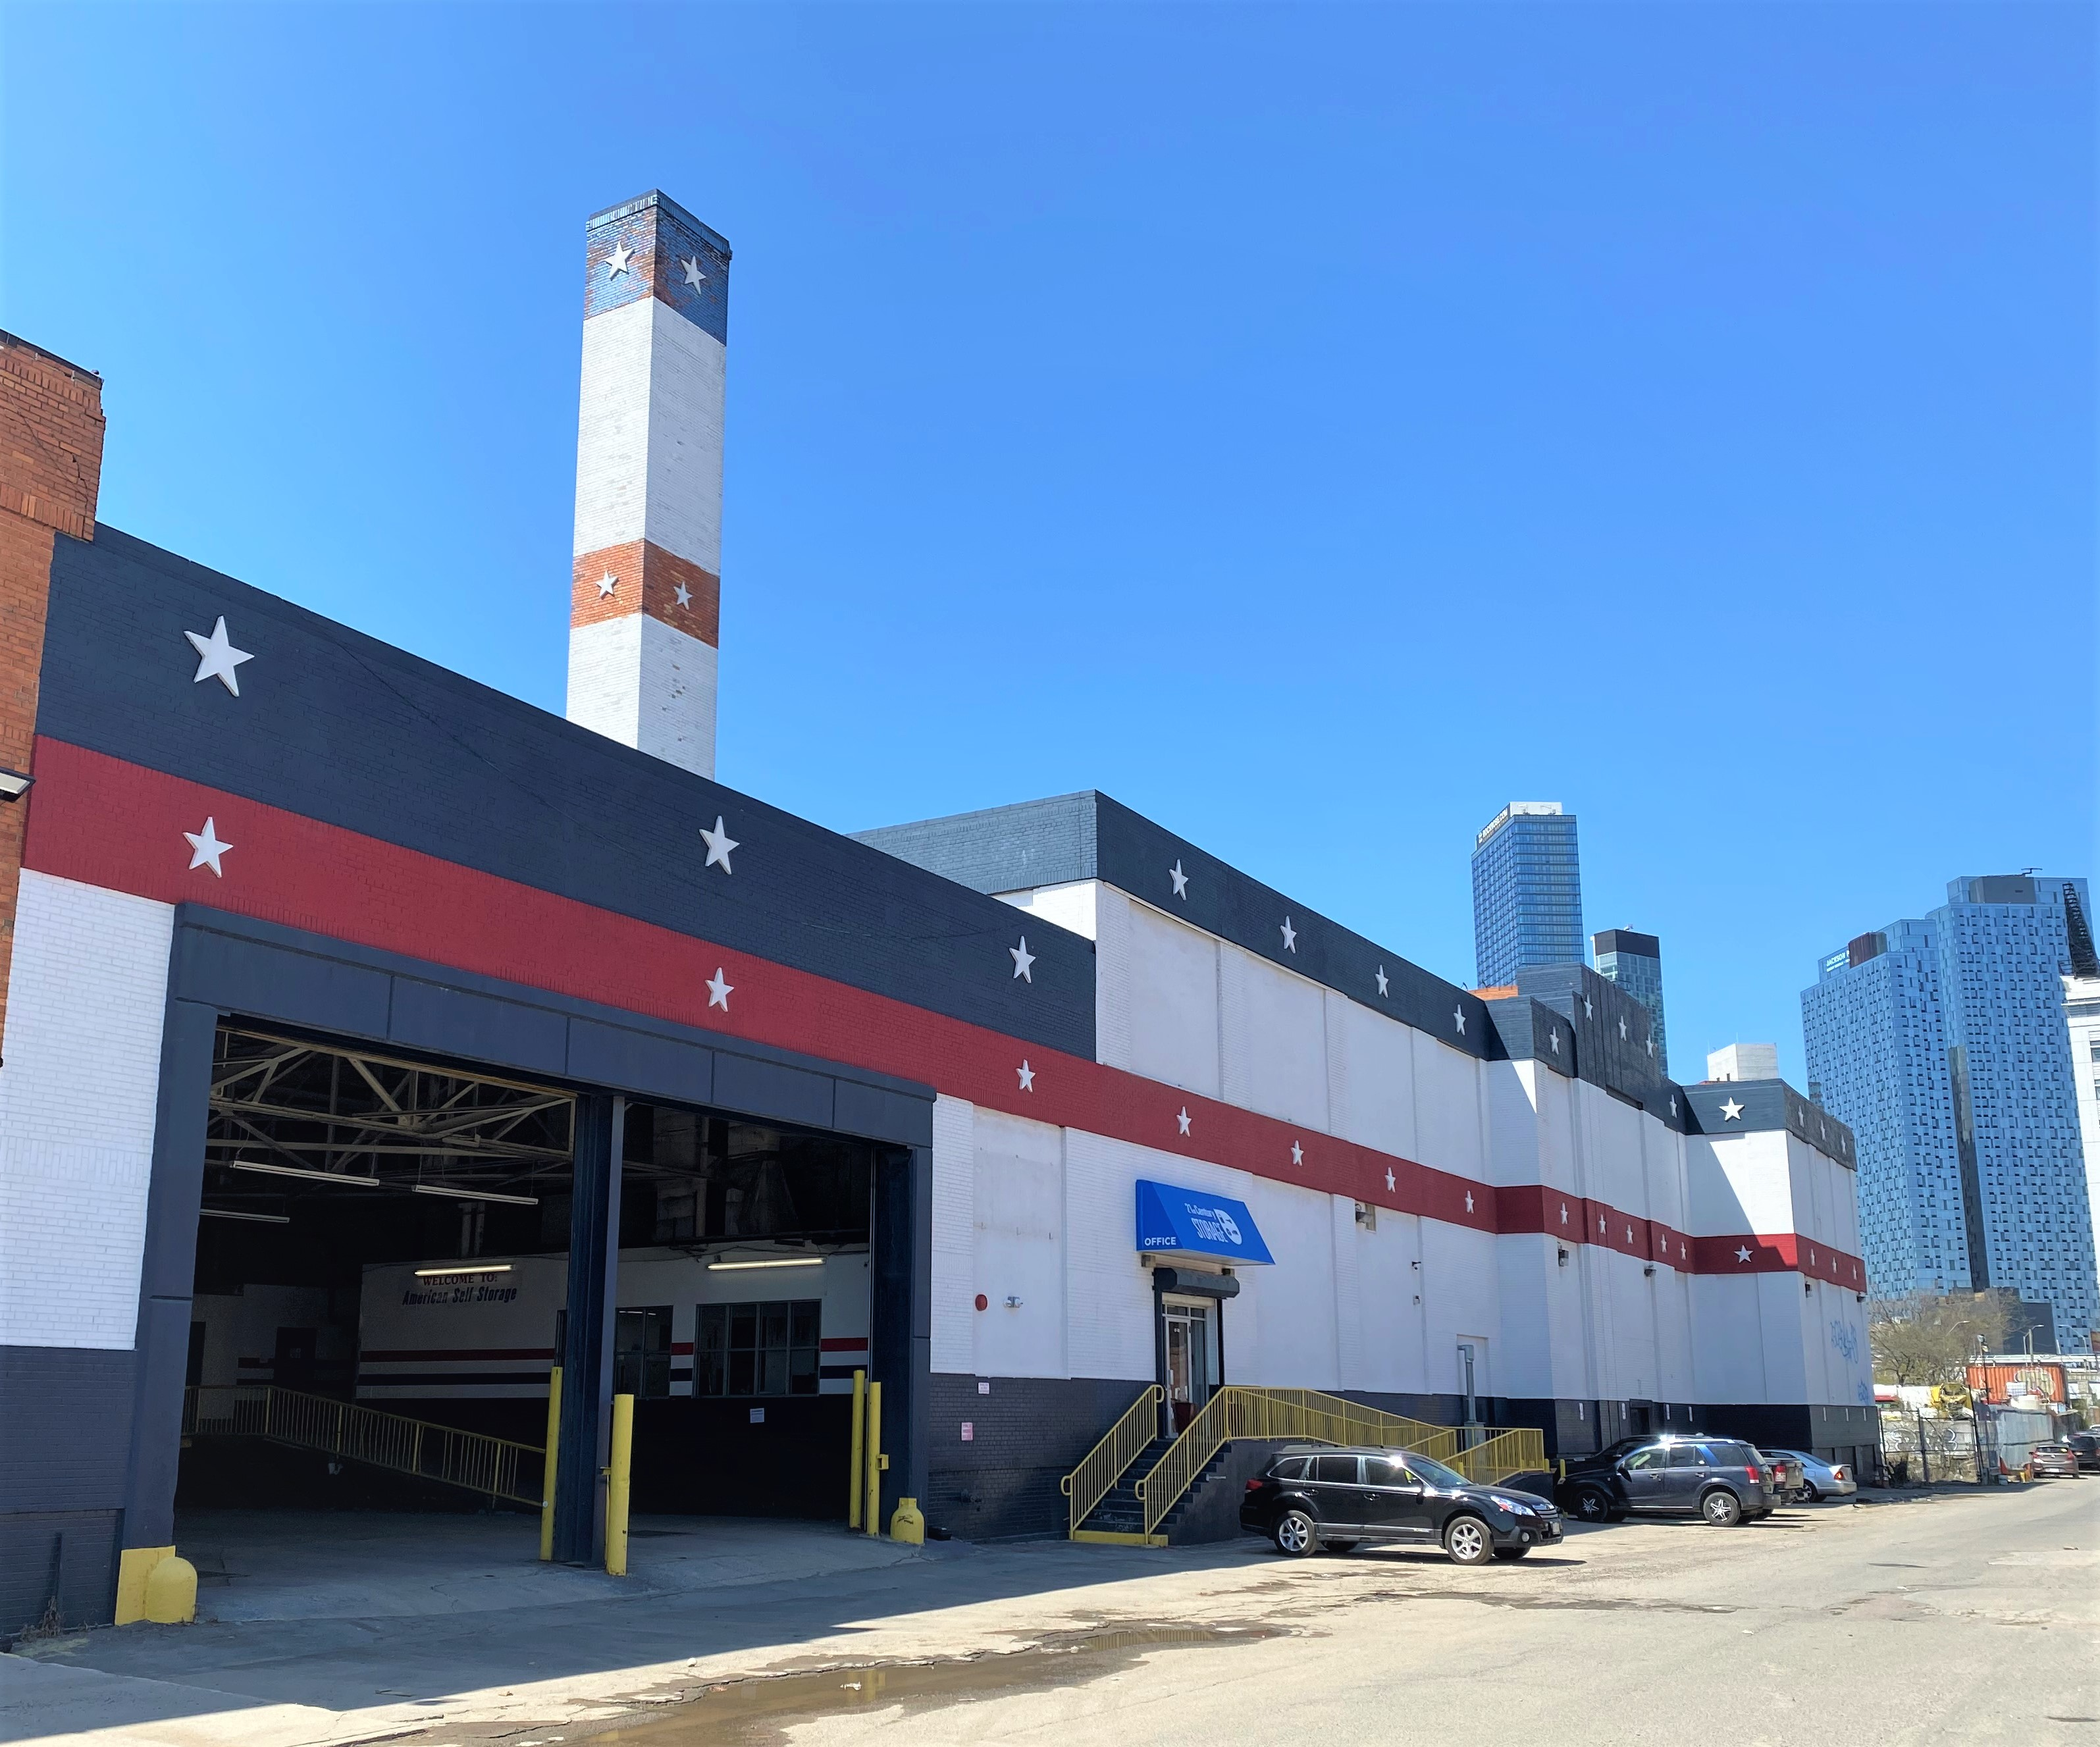 21st Century Storage Acquires New Property in New York